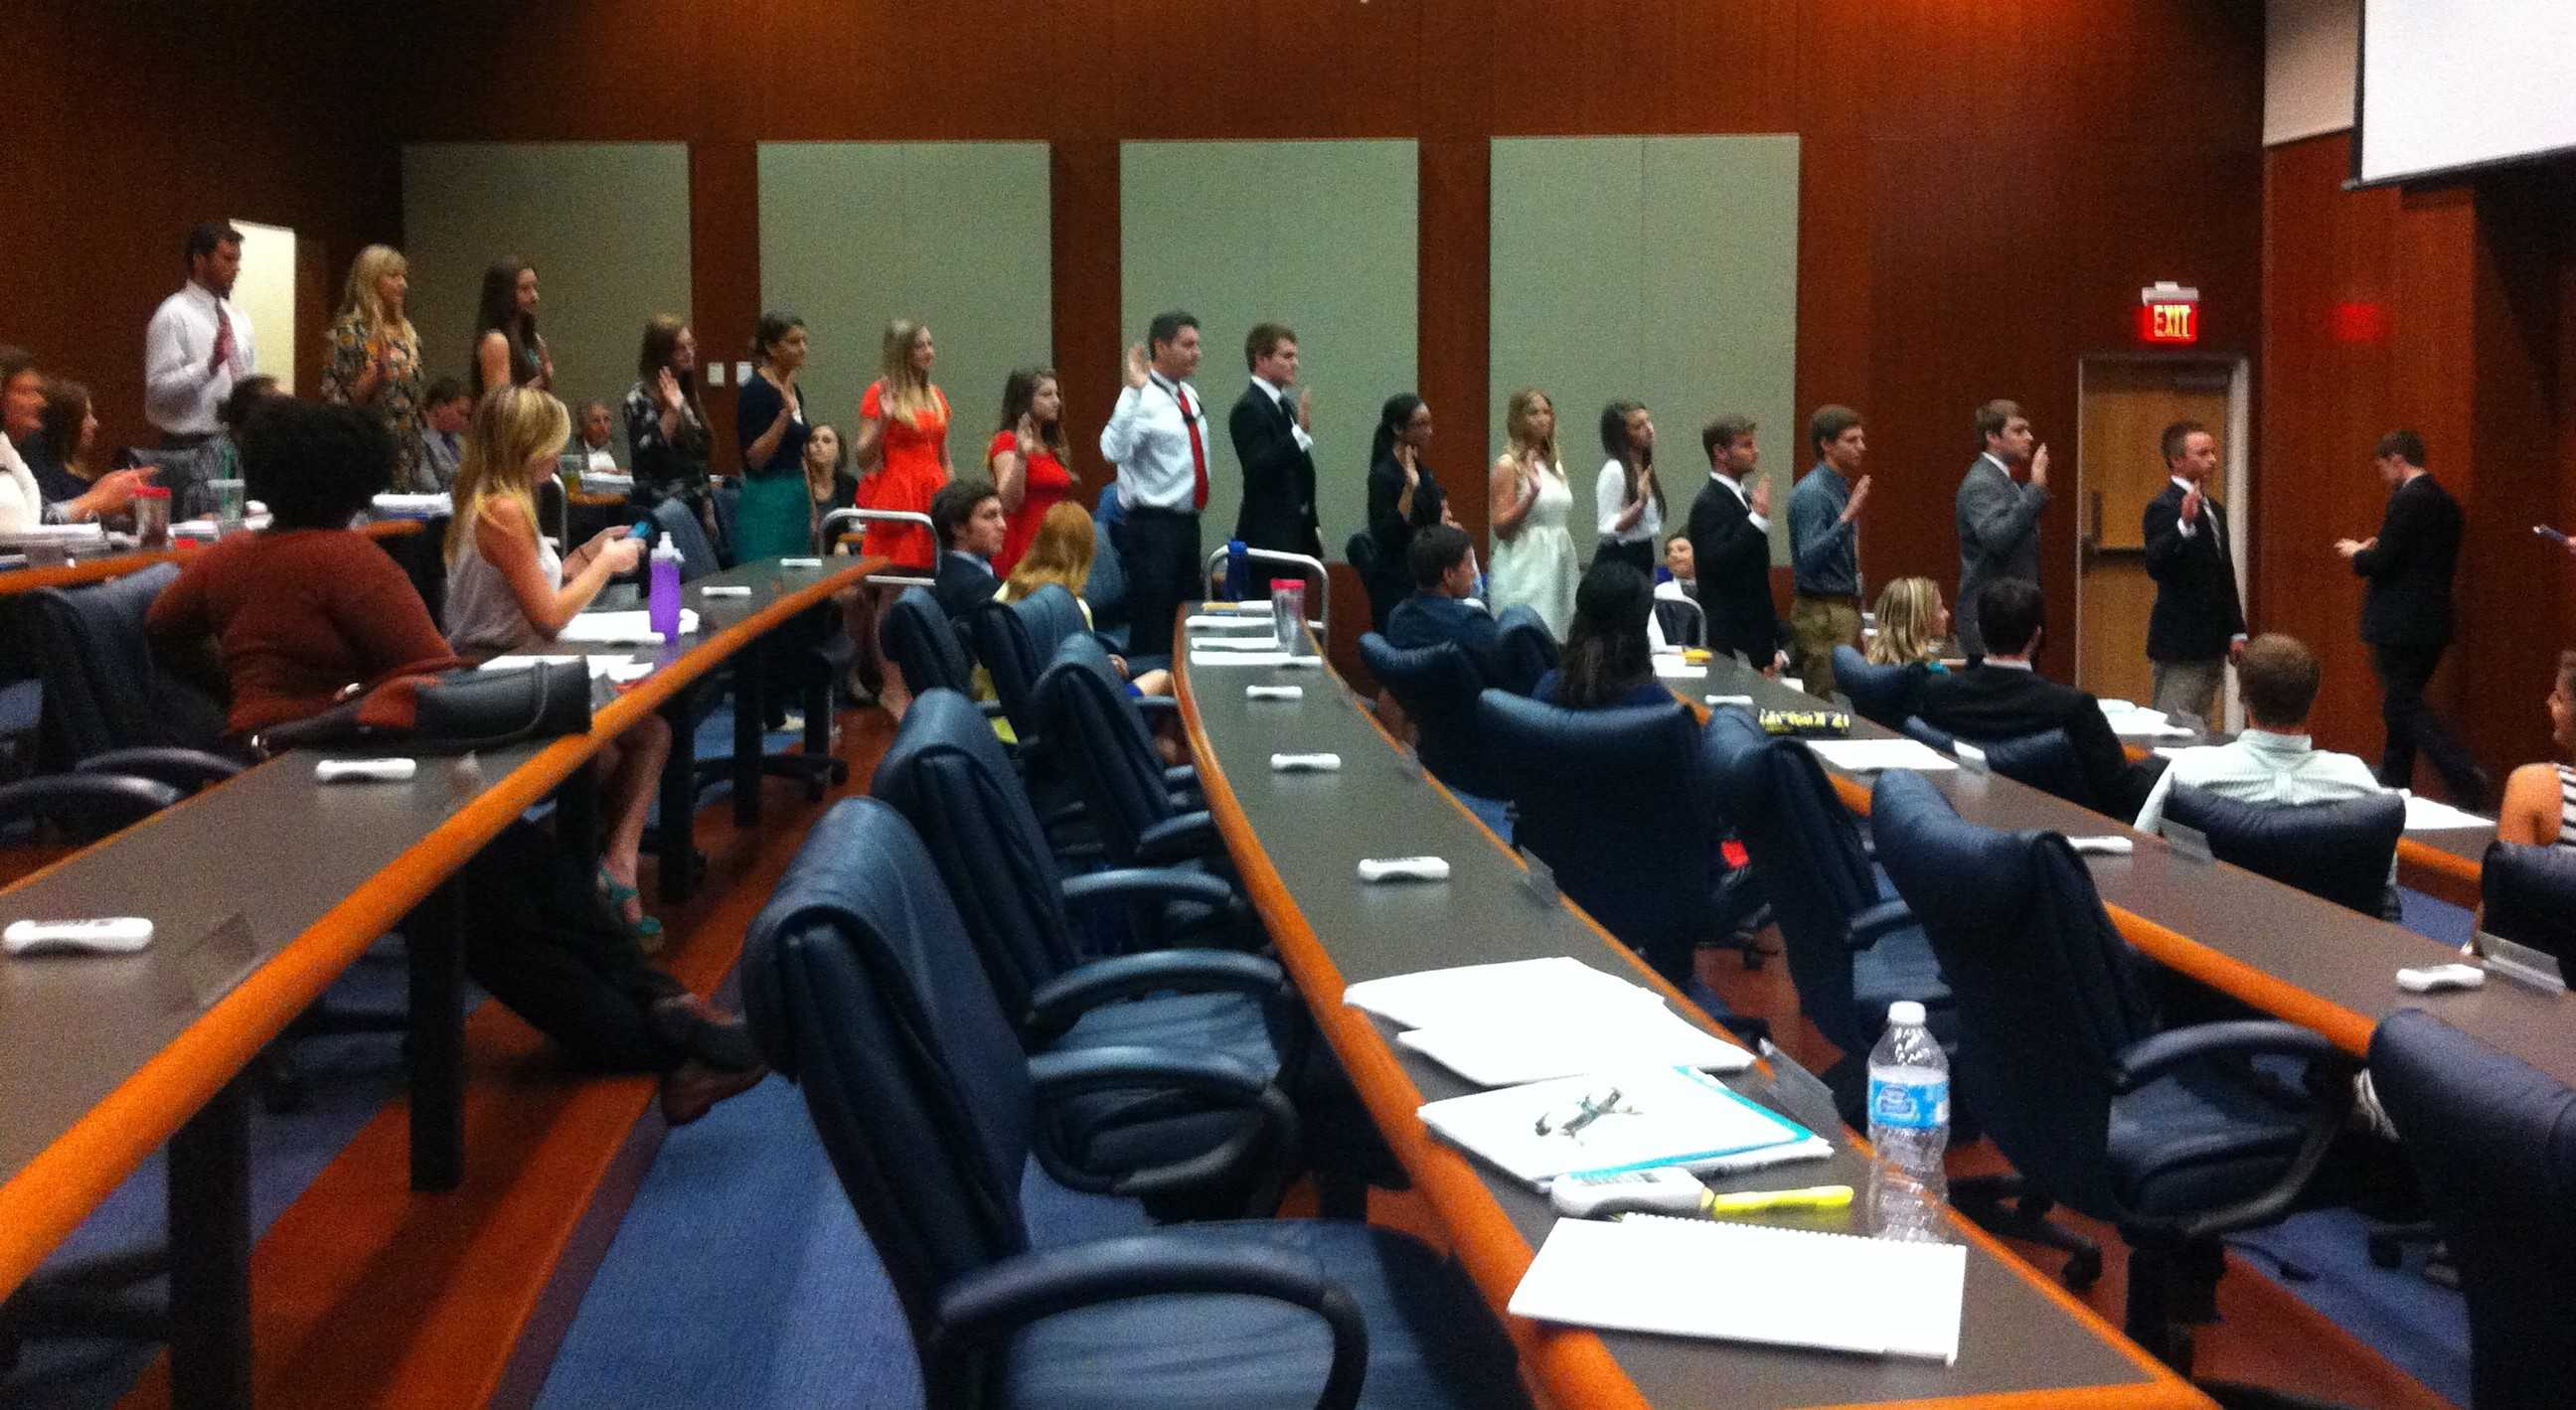 SG members, new and old, were sworn into various positions for next term. Photo by Tiffany Felts